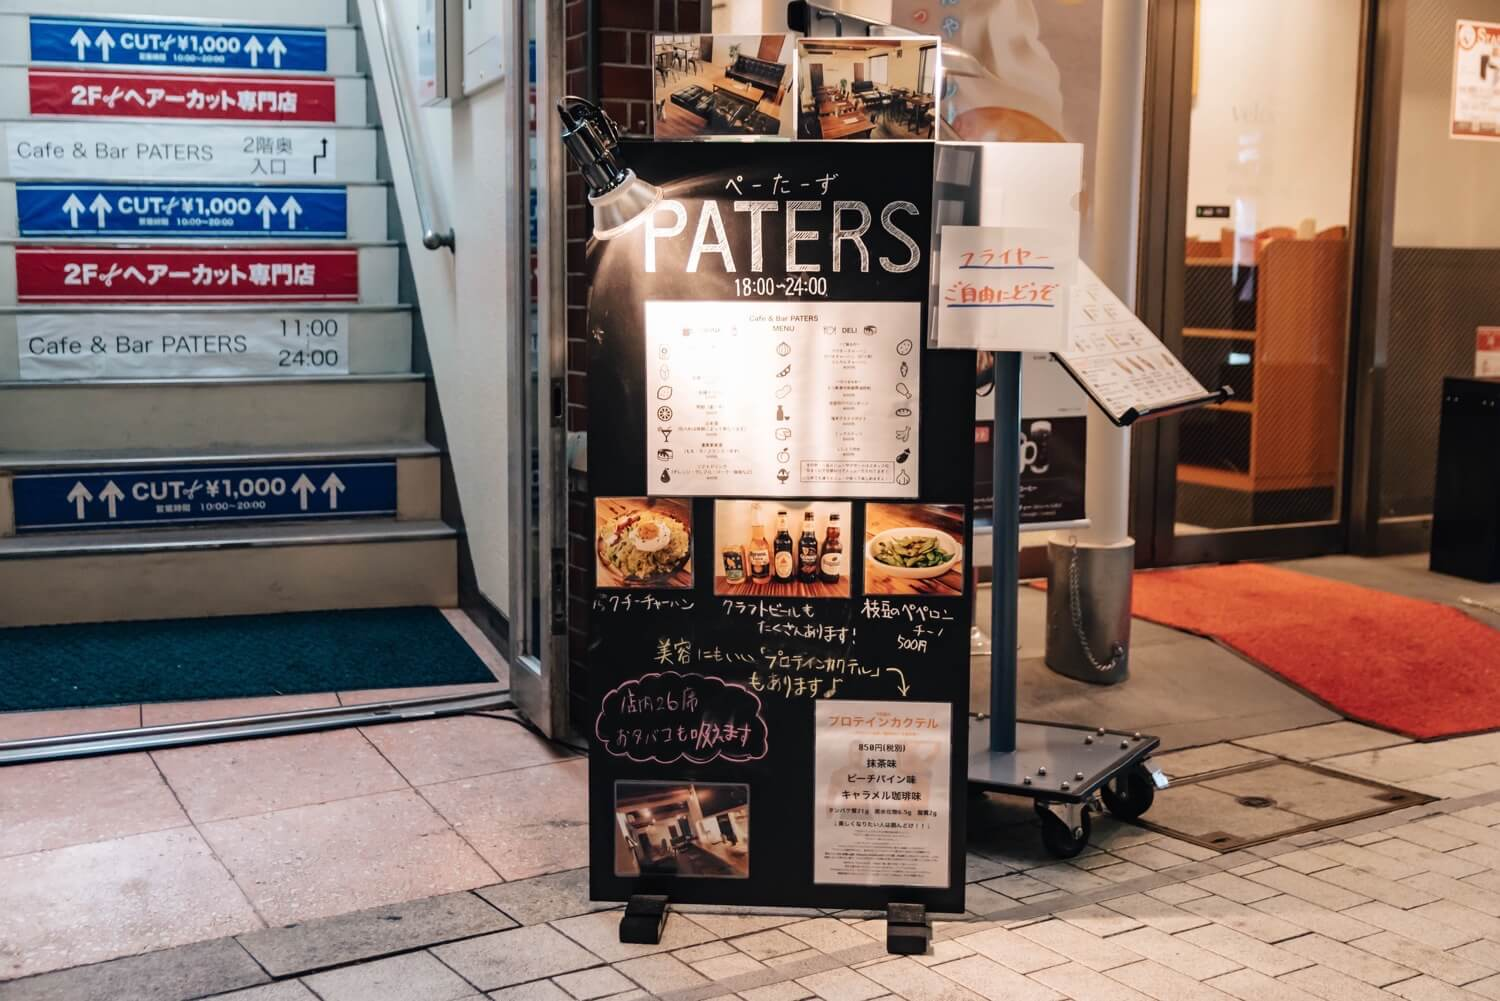 Paters 20